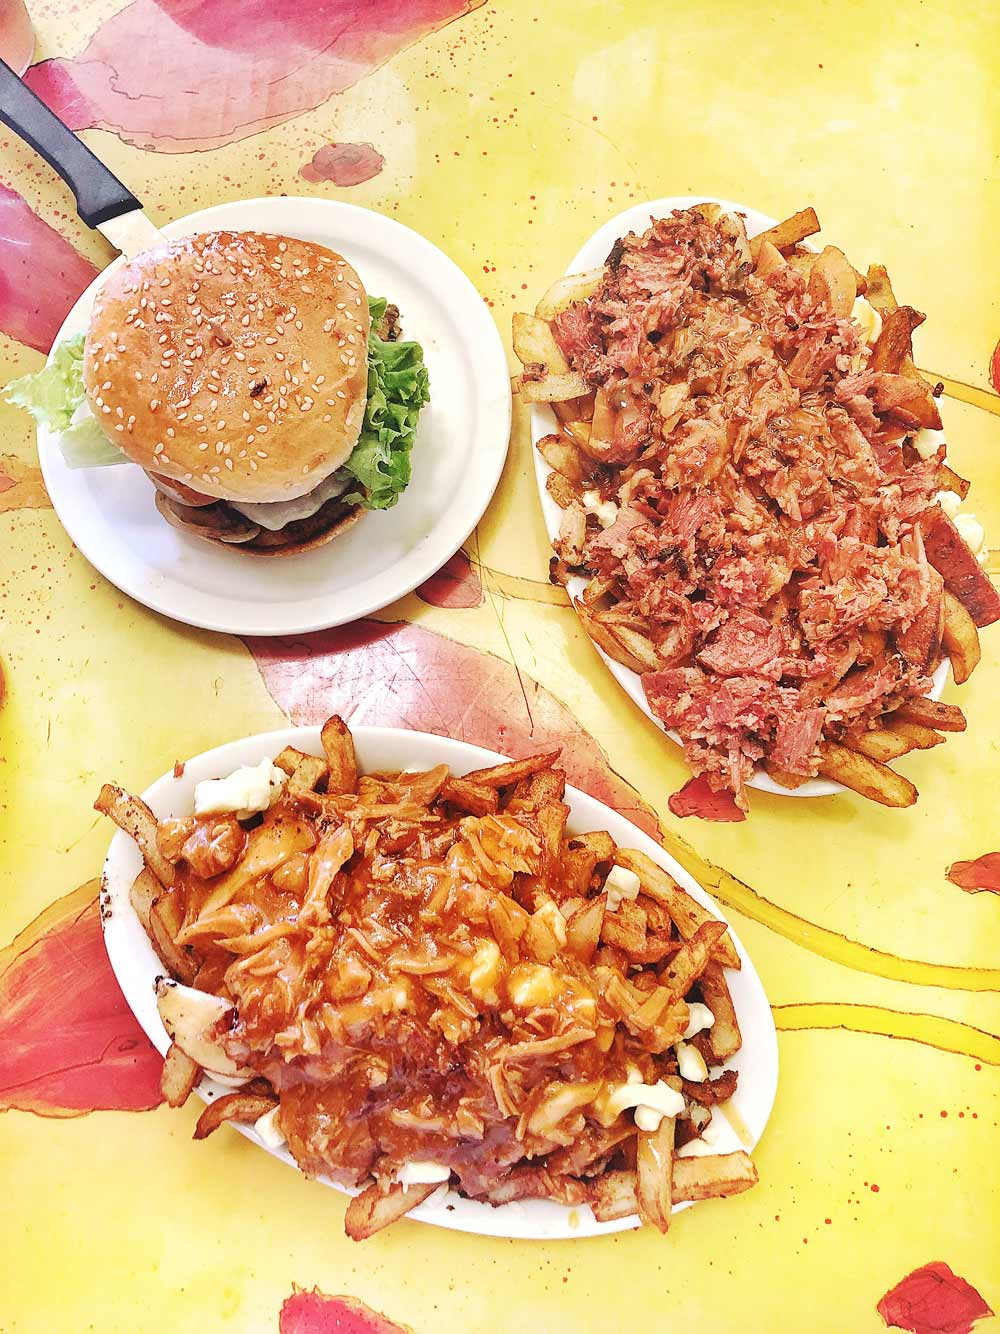 2 Days in Montreal - A Guide to What to Do and Where to Eat - La Banquise Poutine